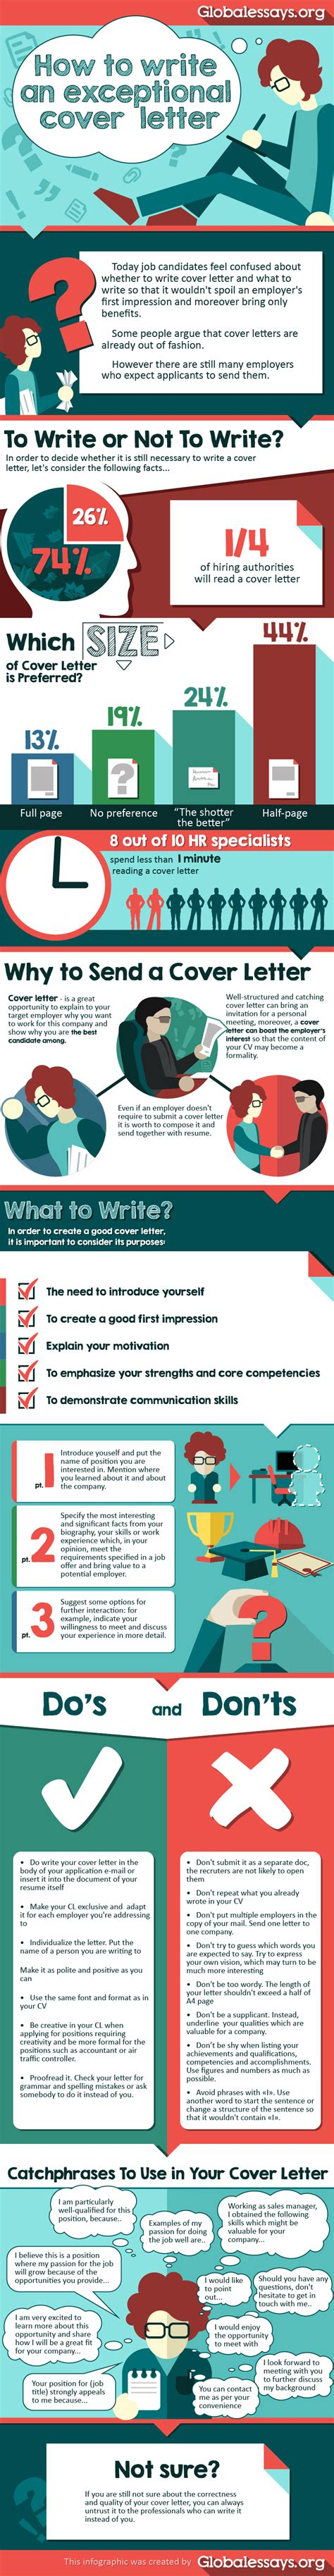 how to write good cover letter for internship ideal vistalist co